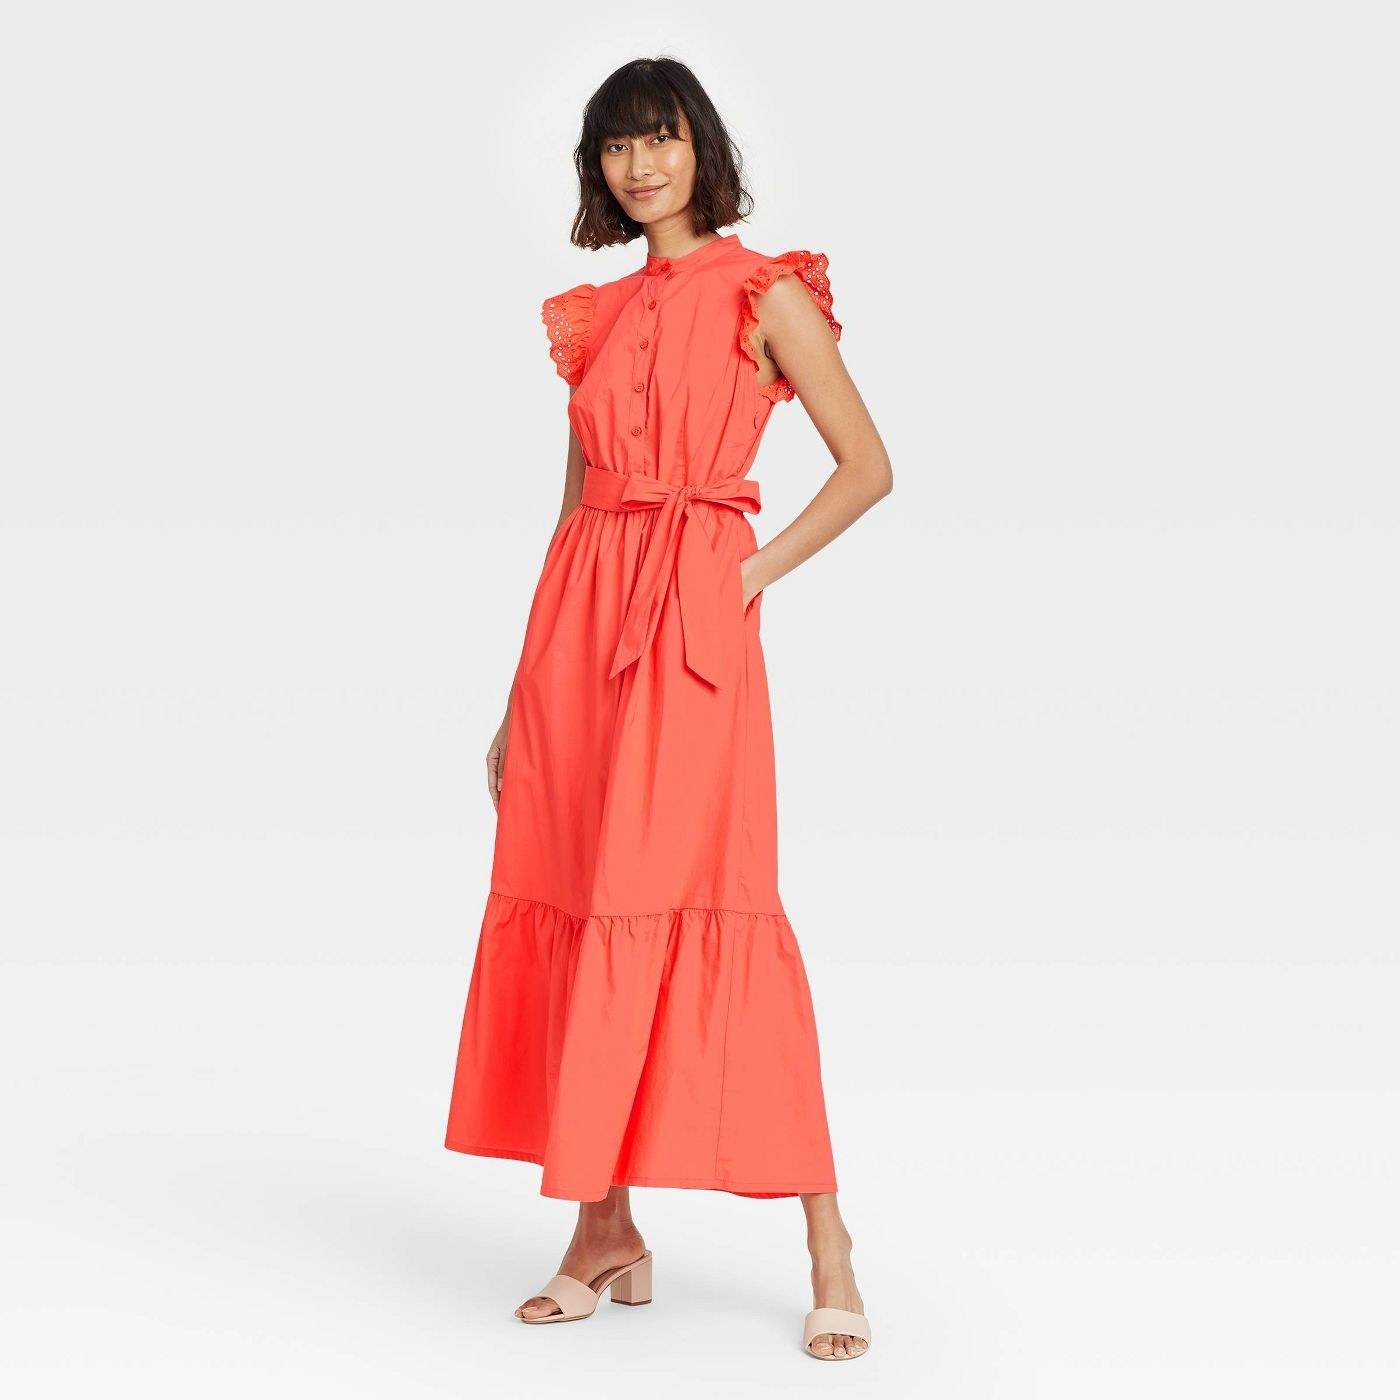 Model wearing short sleeve coral dress with a button down bodice